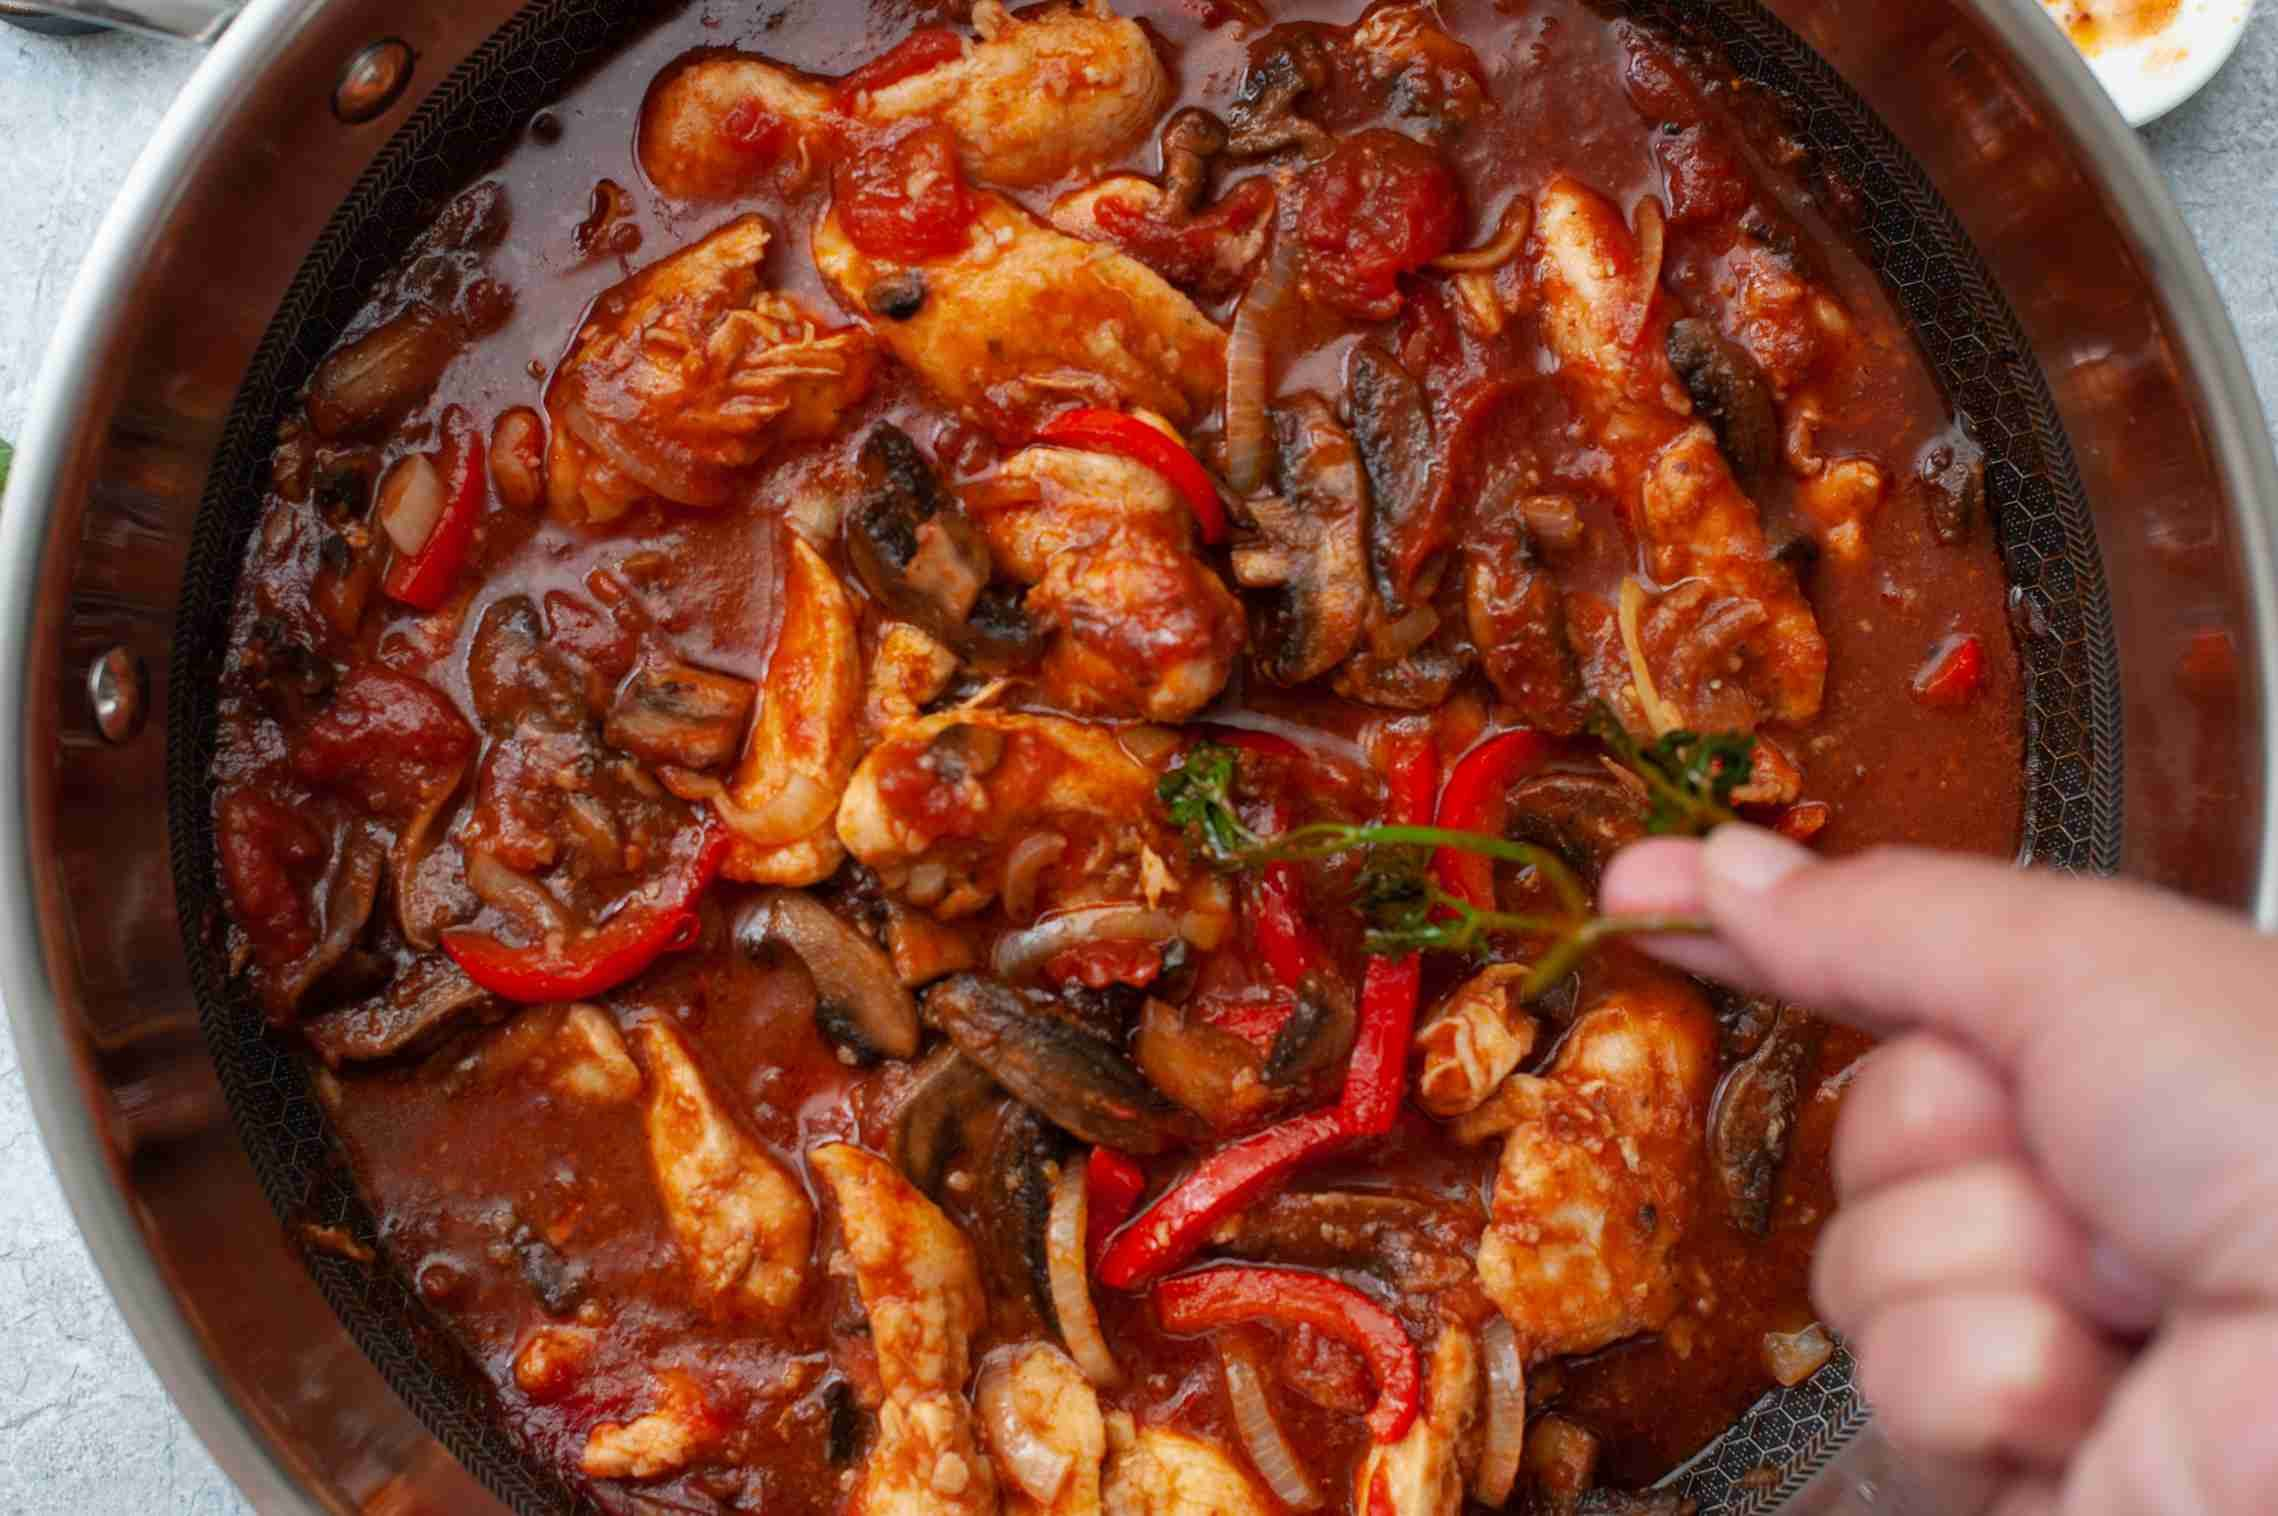 Easy Tasty Chicken Marengo With Mushrooms Garlic And Tomatoes Chicken Marengo Chicken Recipes How To Cook Pasta